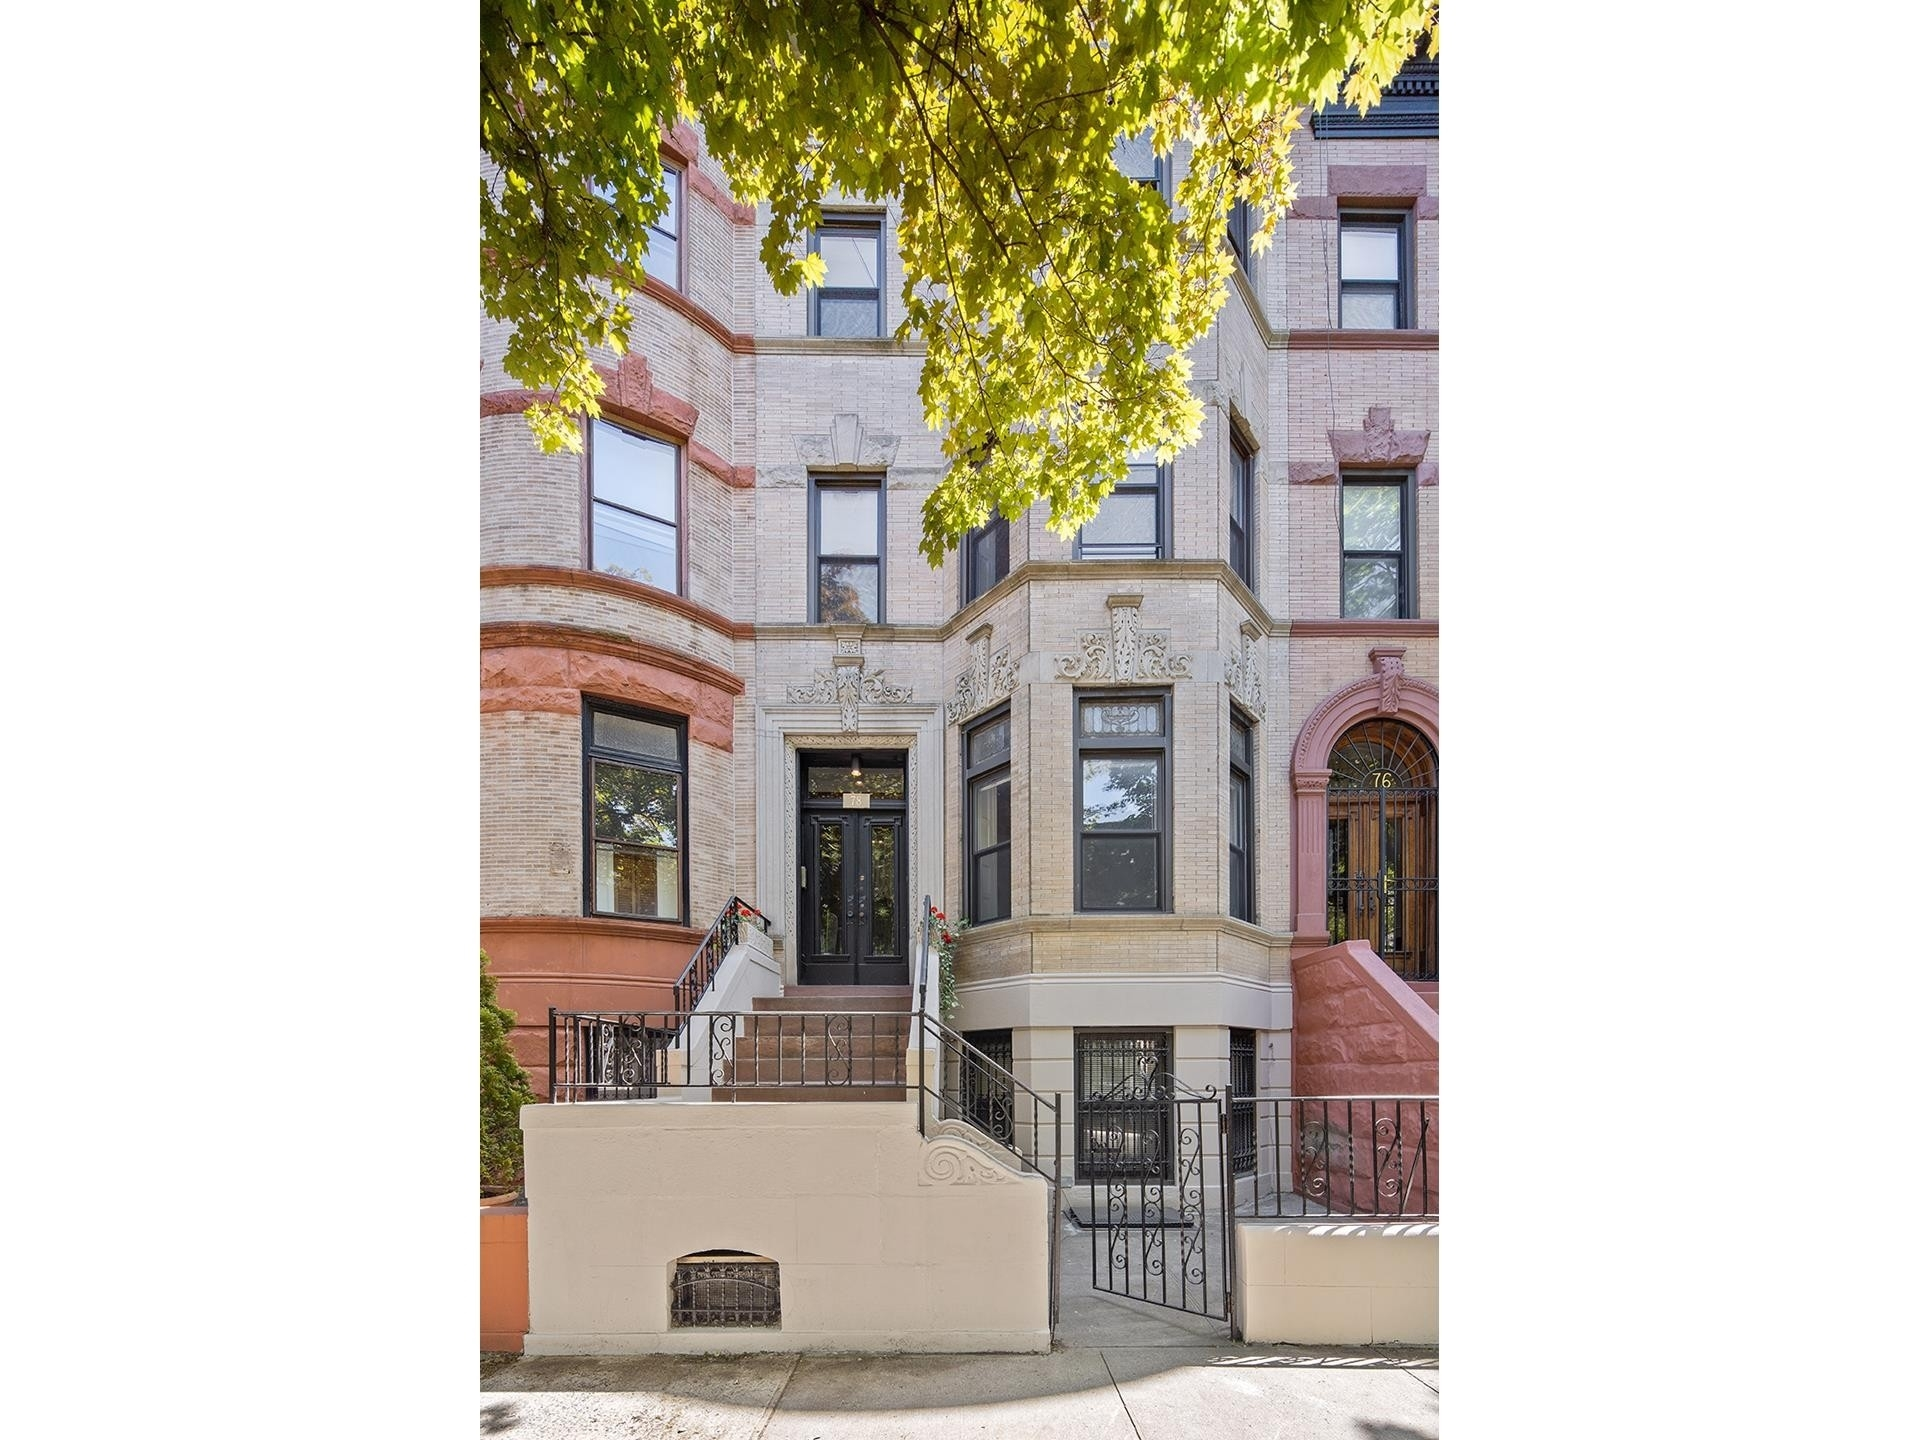 Multi Family Townhouse for Sale at Prospect Lefferts Gardens, Brooklyn, NY 11225